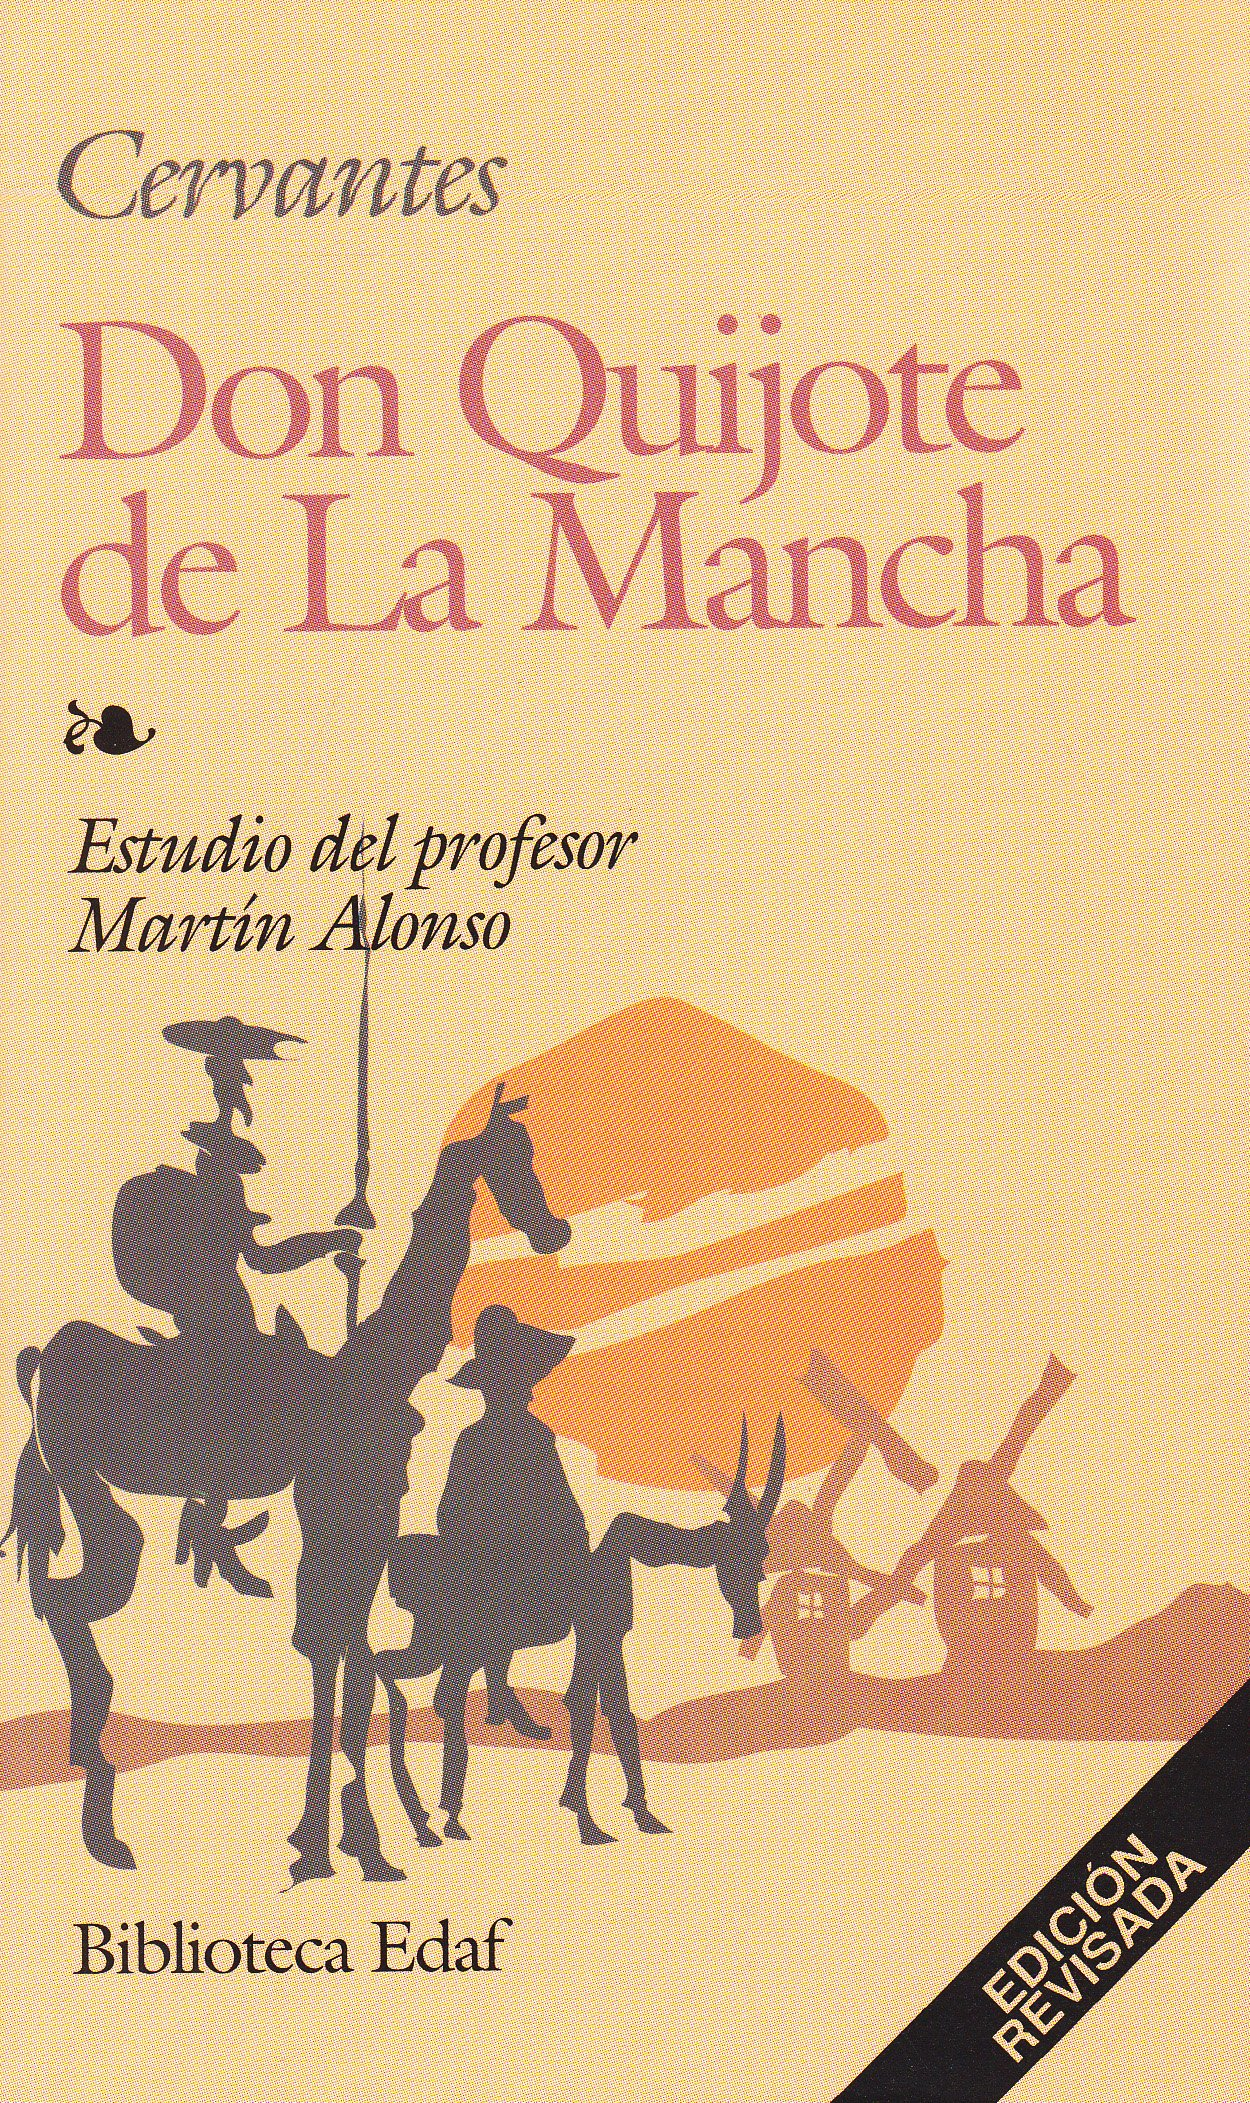 don quijote de la mancha adapted for intermediate students paperback El ingenioso hidalgo don quijote de la mancha miguel de cervantes (1547-1616) 2005 and 2015 marked the 400th anniversary of the publication of the two parts of don quijote, without doubt one of the masterpieces of world literature.